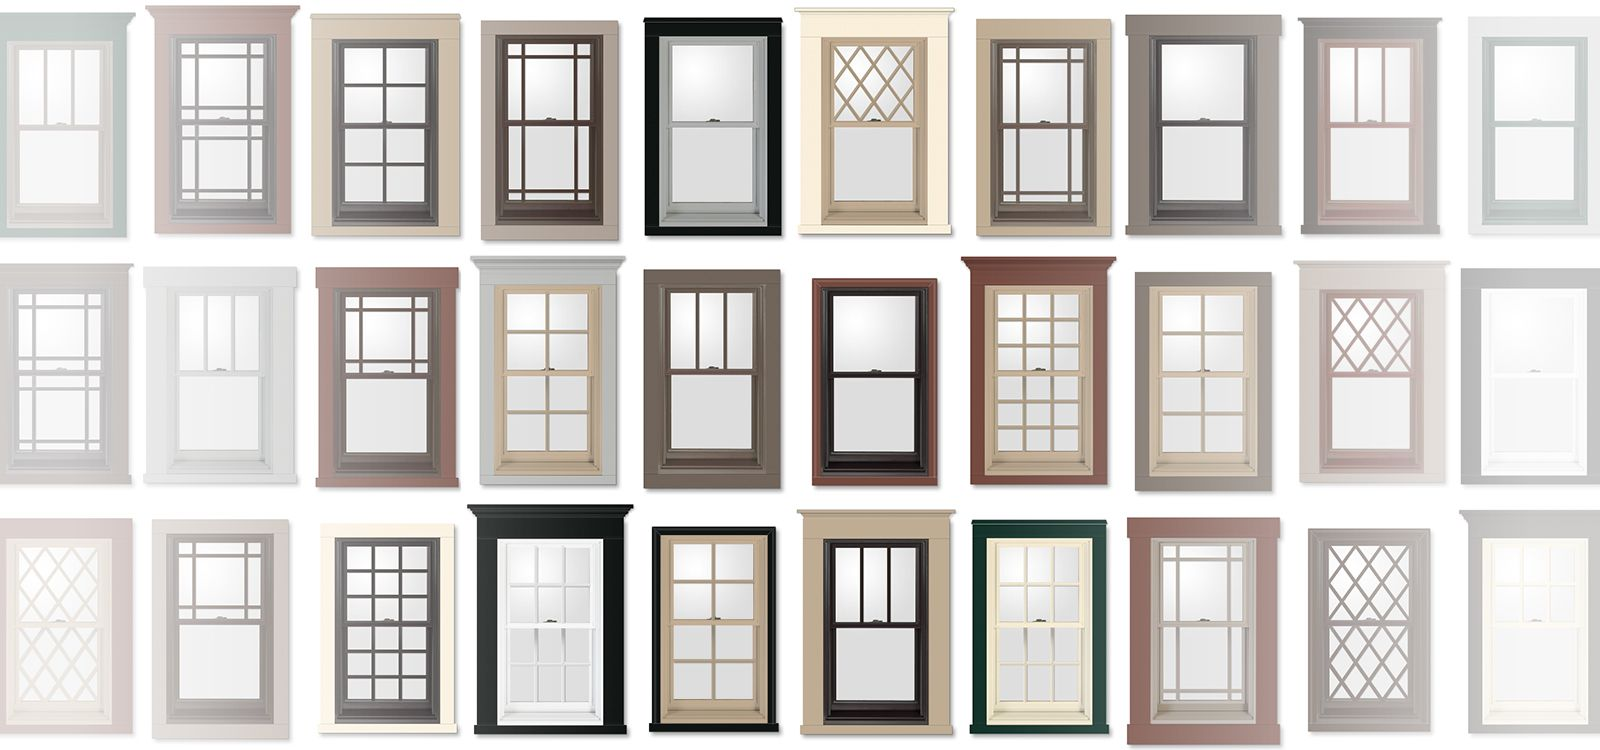 Andersen windows and patio doors 1 in quality and used for Window styles for homes